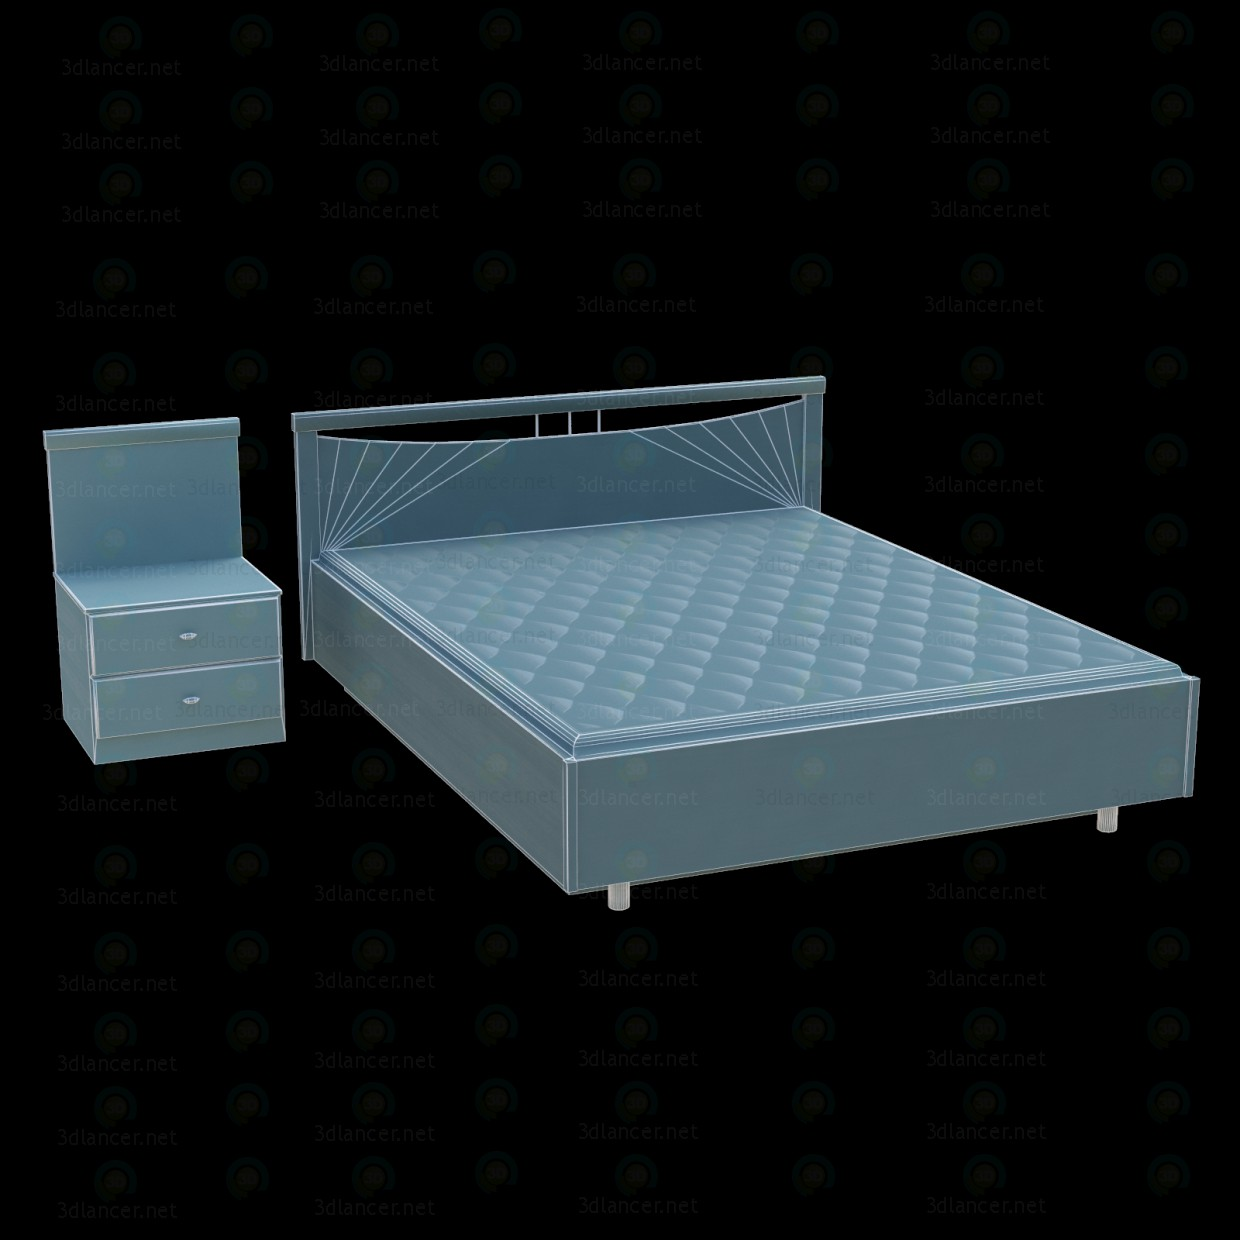 3d model The bed and nightstand DMI - preview